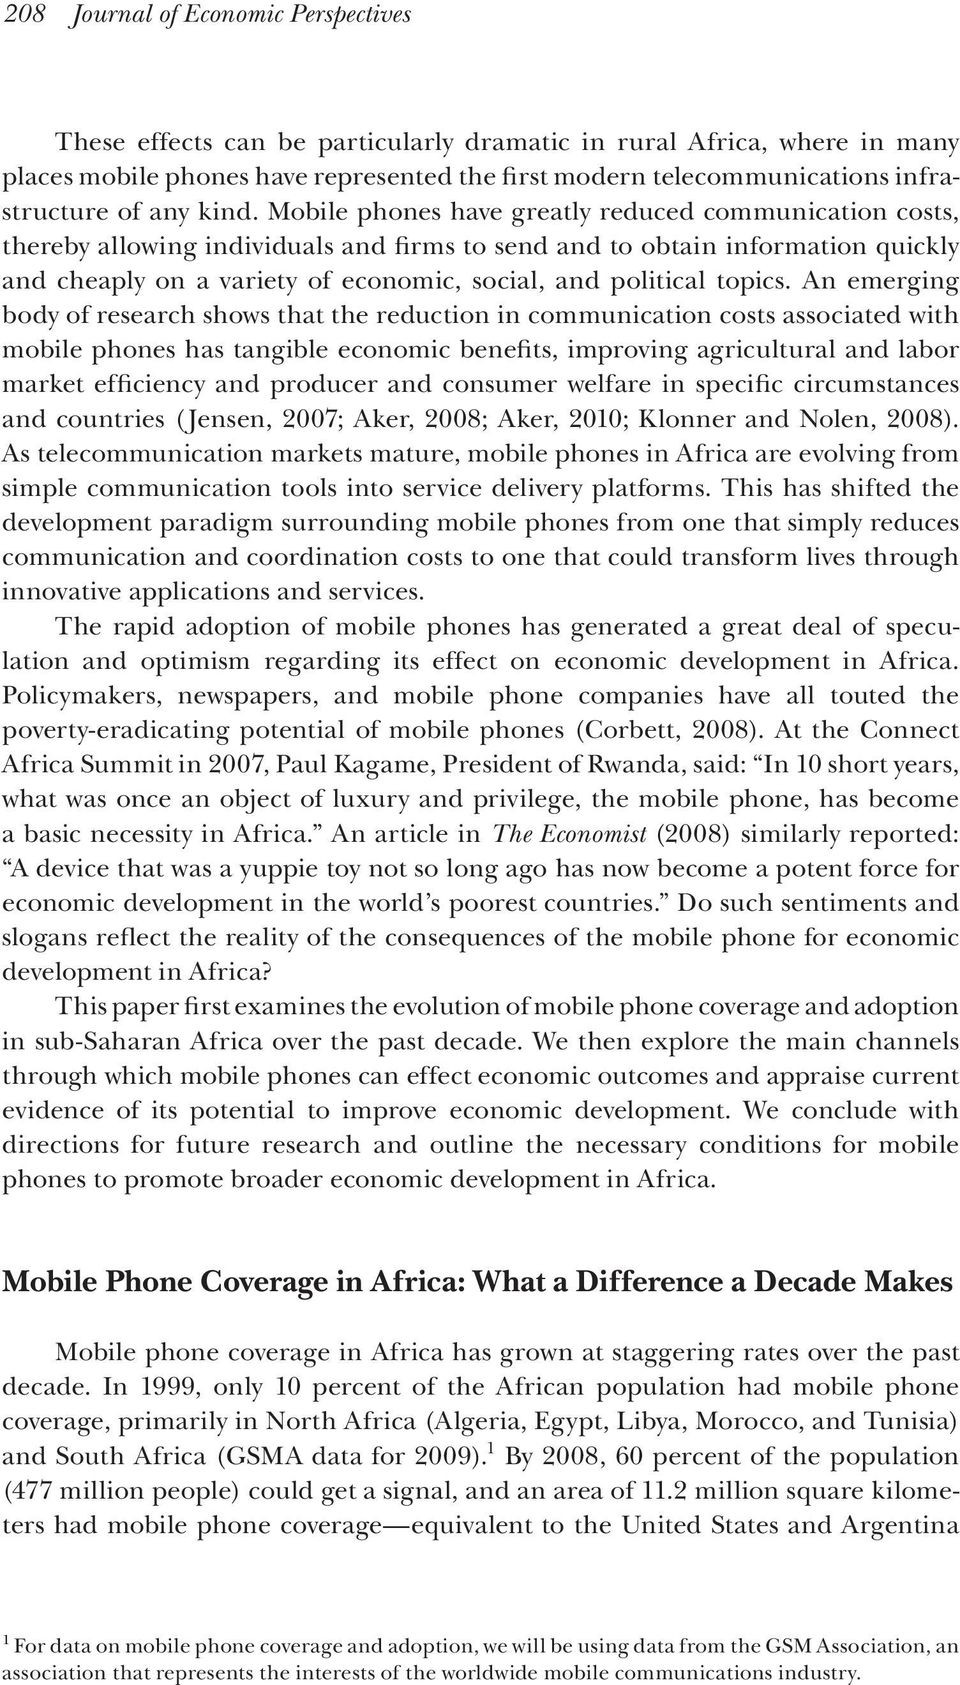 Mobile phones have greatly reduced communication costs, thereby allowing individuals and firms to send and to obtain information quickly and cheaply on a variety of economic, social, and political